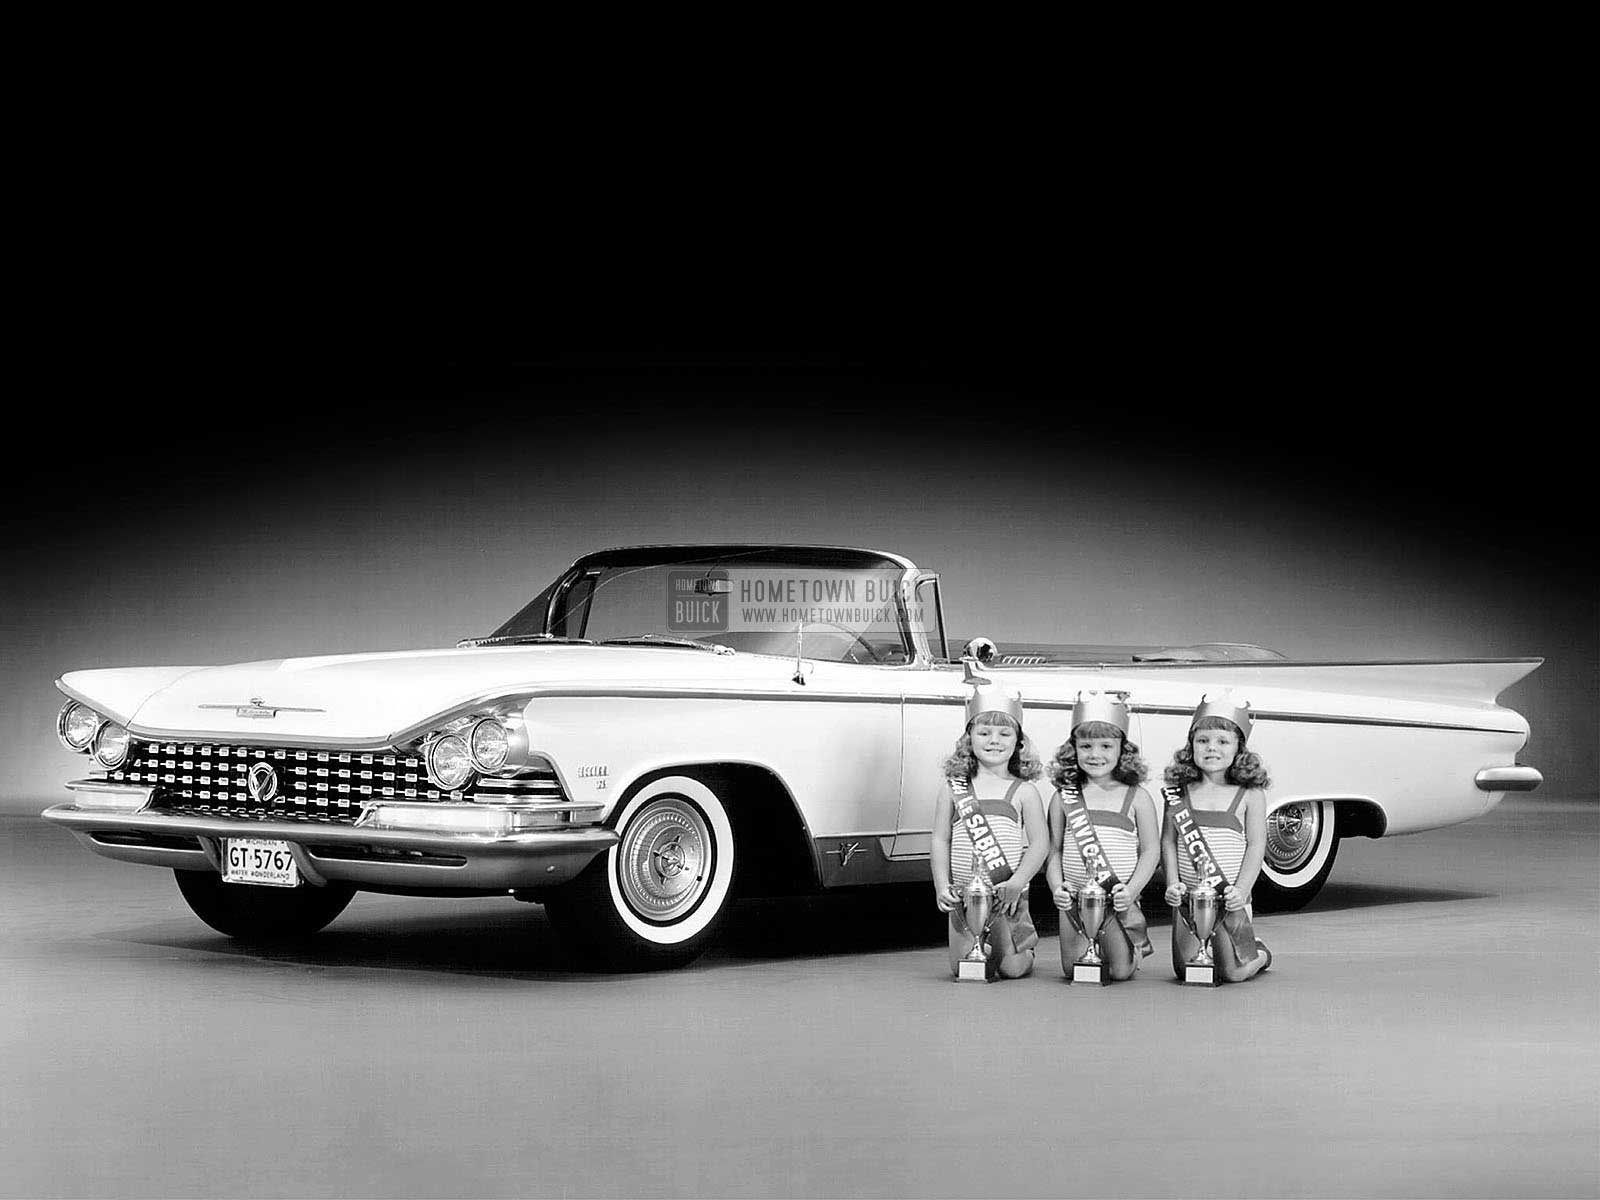 1959 Buick Model Year